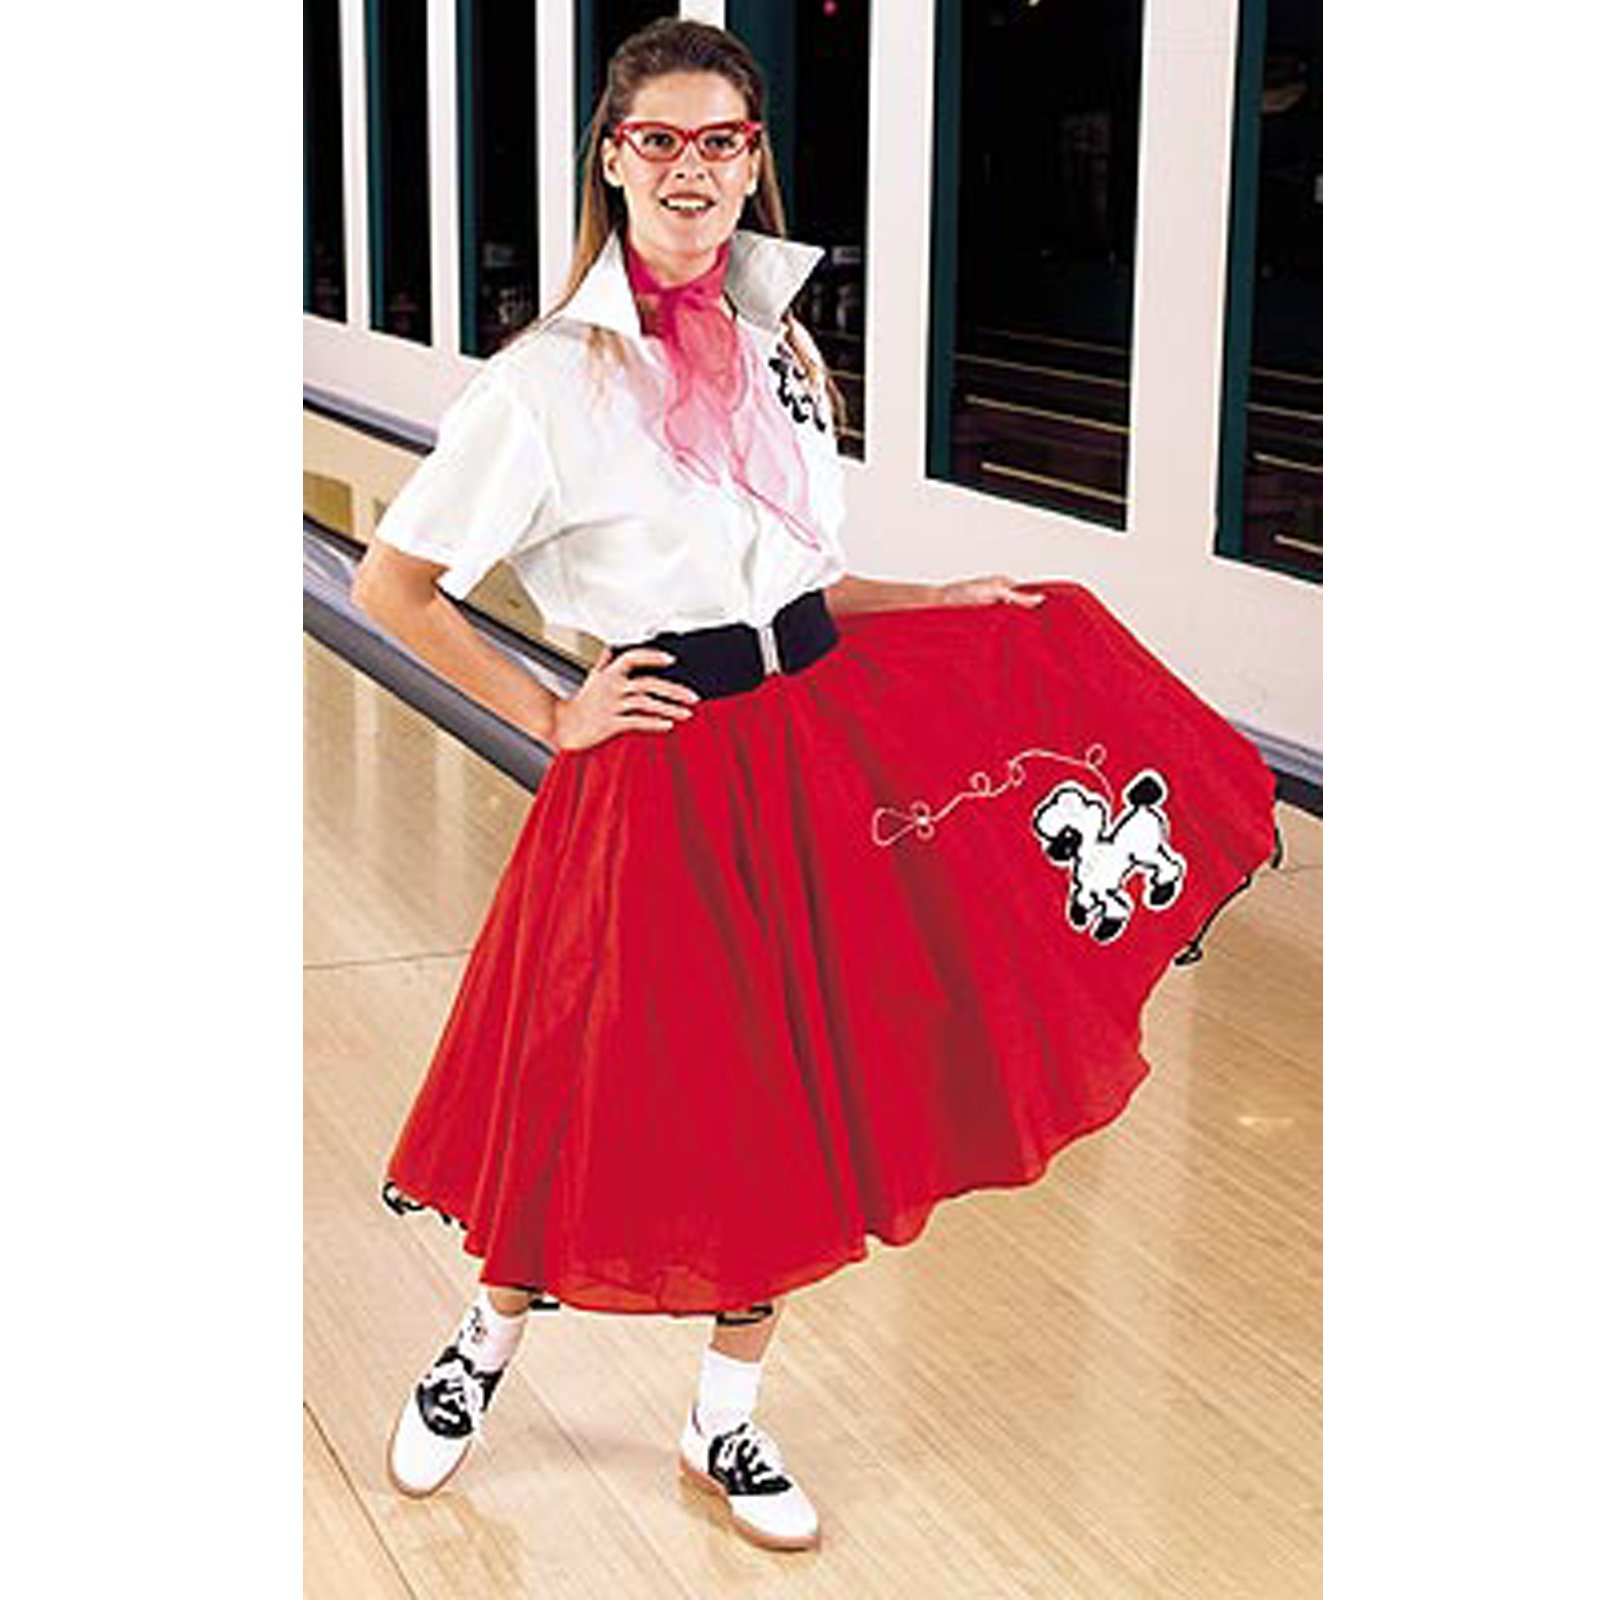 Complete Poodle Skirt Outfit Plus (Red & White) Adult